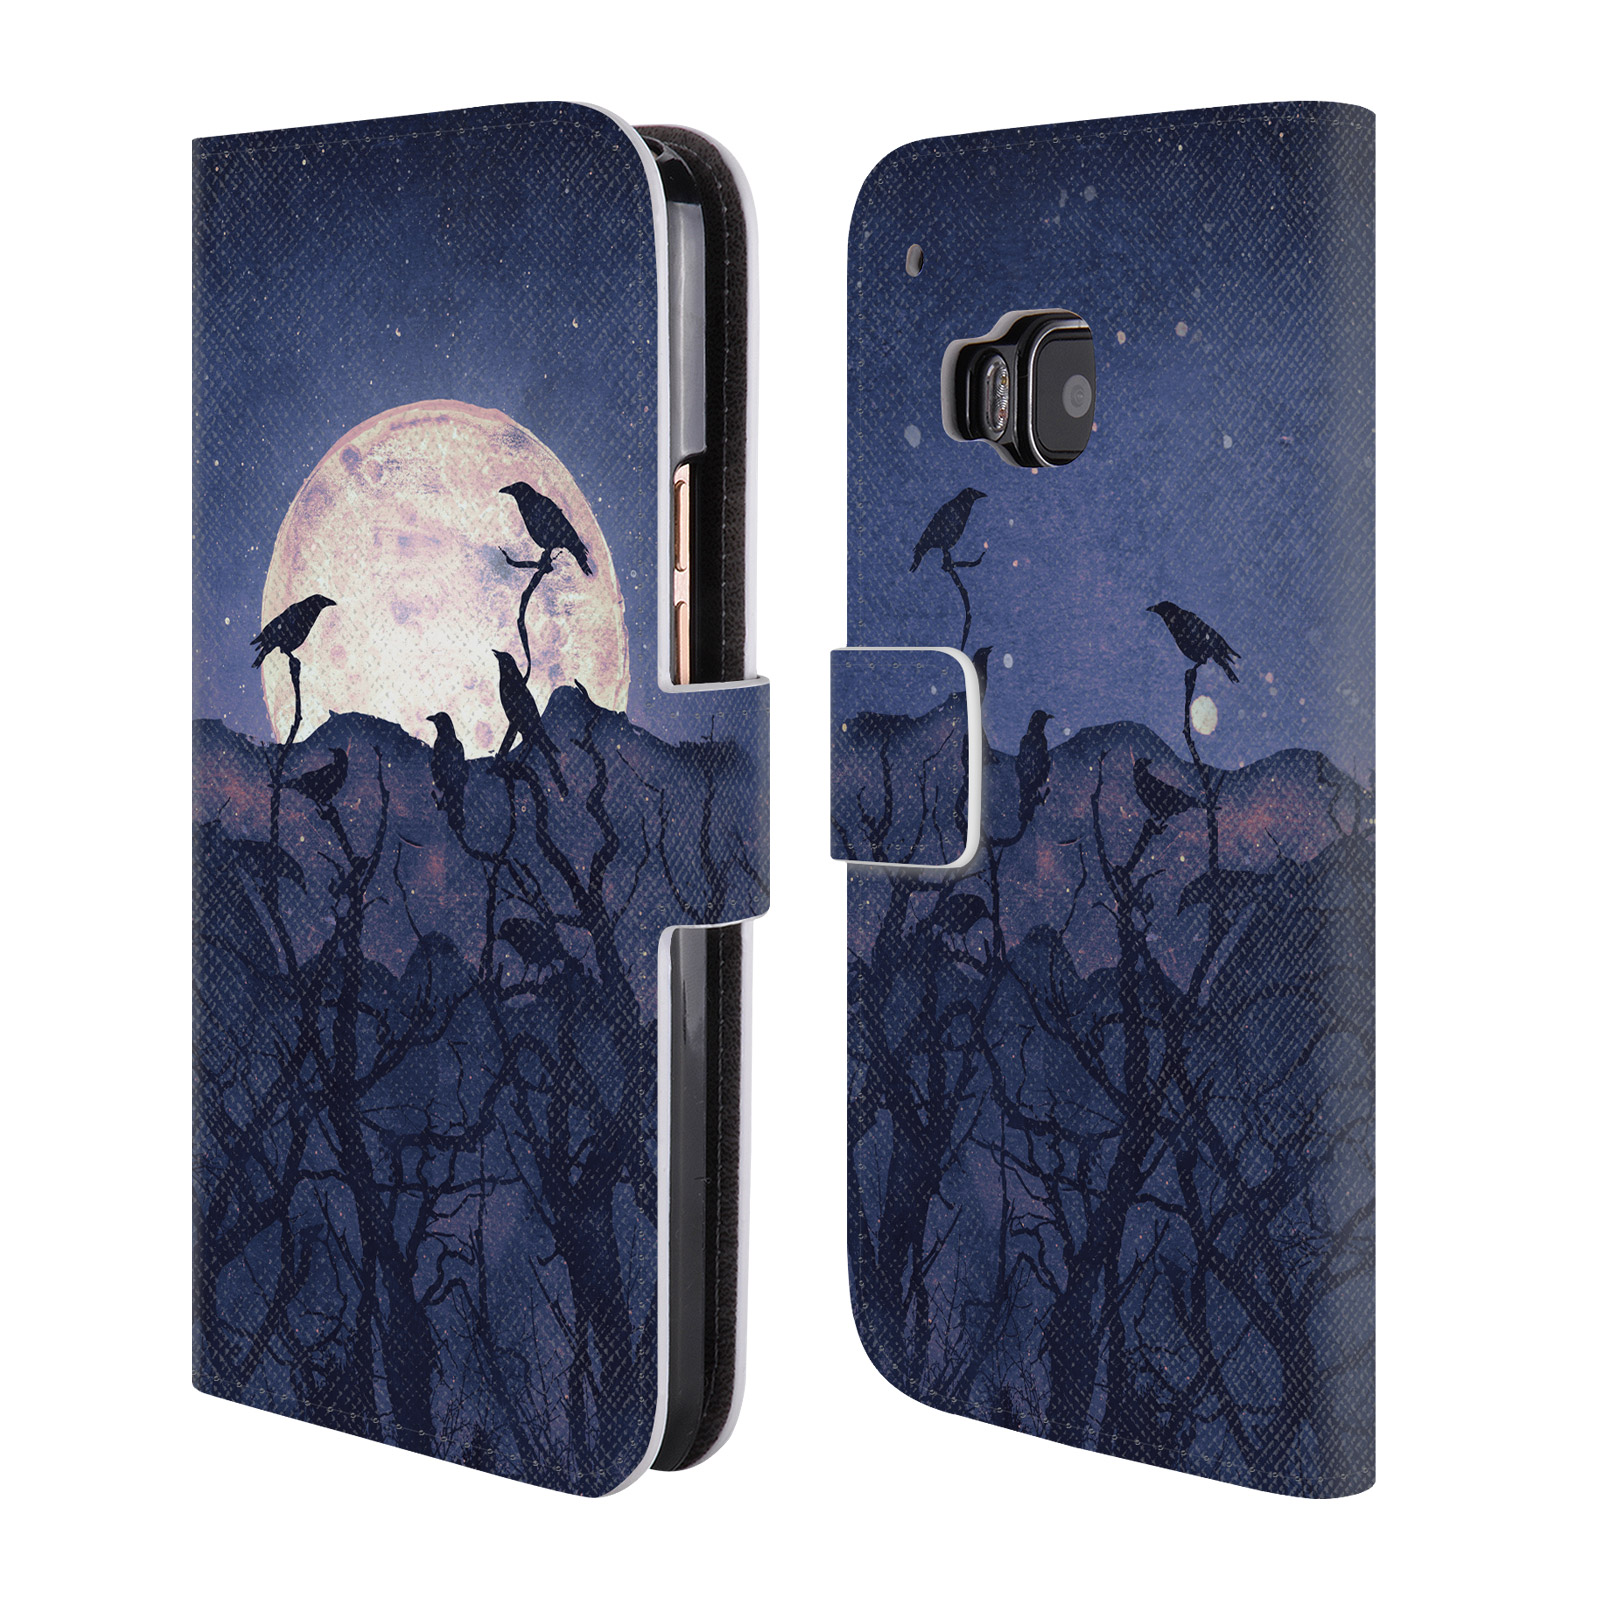 OFFICIAL-TRACIE-ANDREWS-LANDSCAPE-AND-ANIMALS-LEATHER-BOOK-CASE-FOR-HTC-PHONES-1